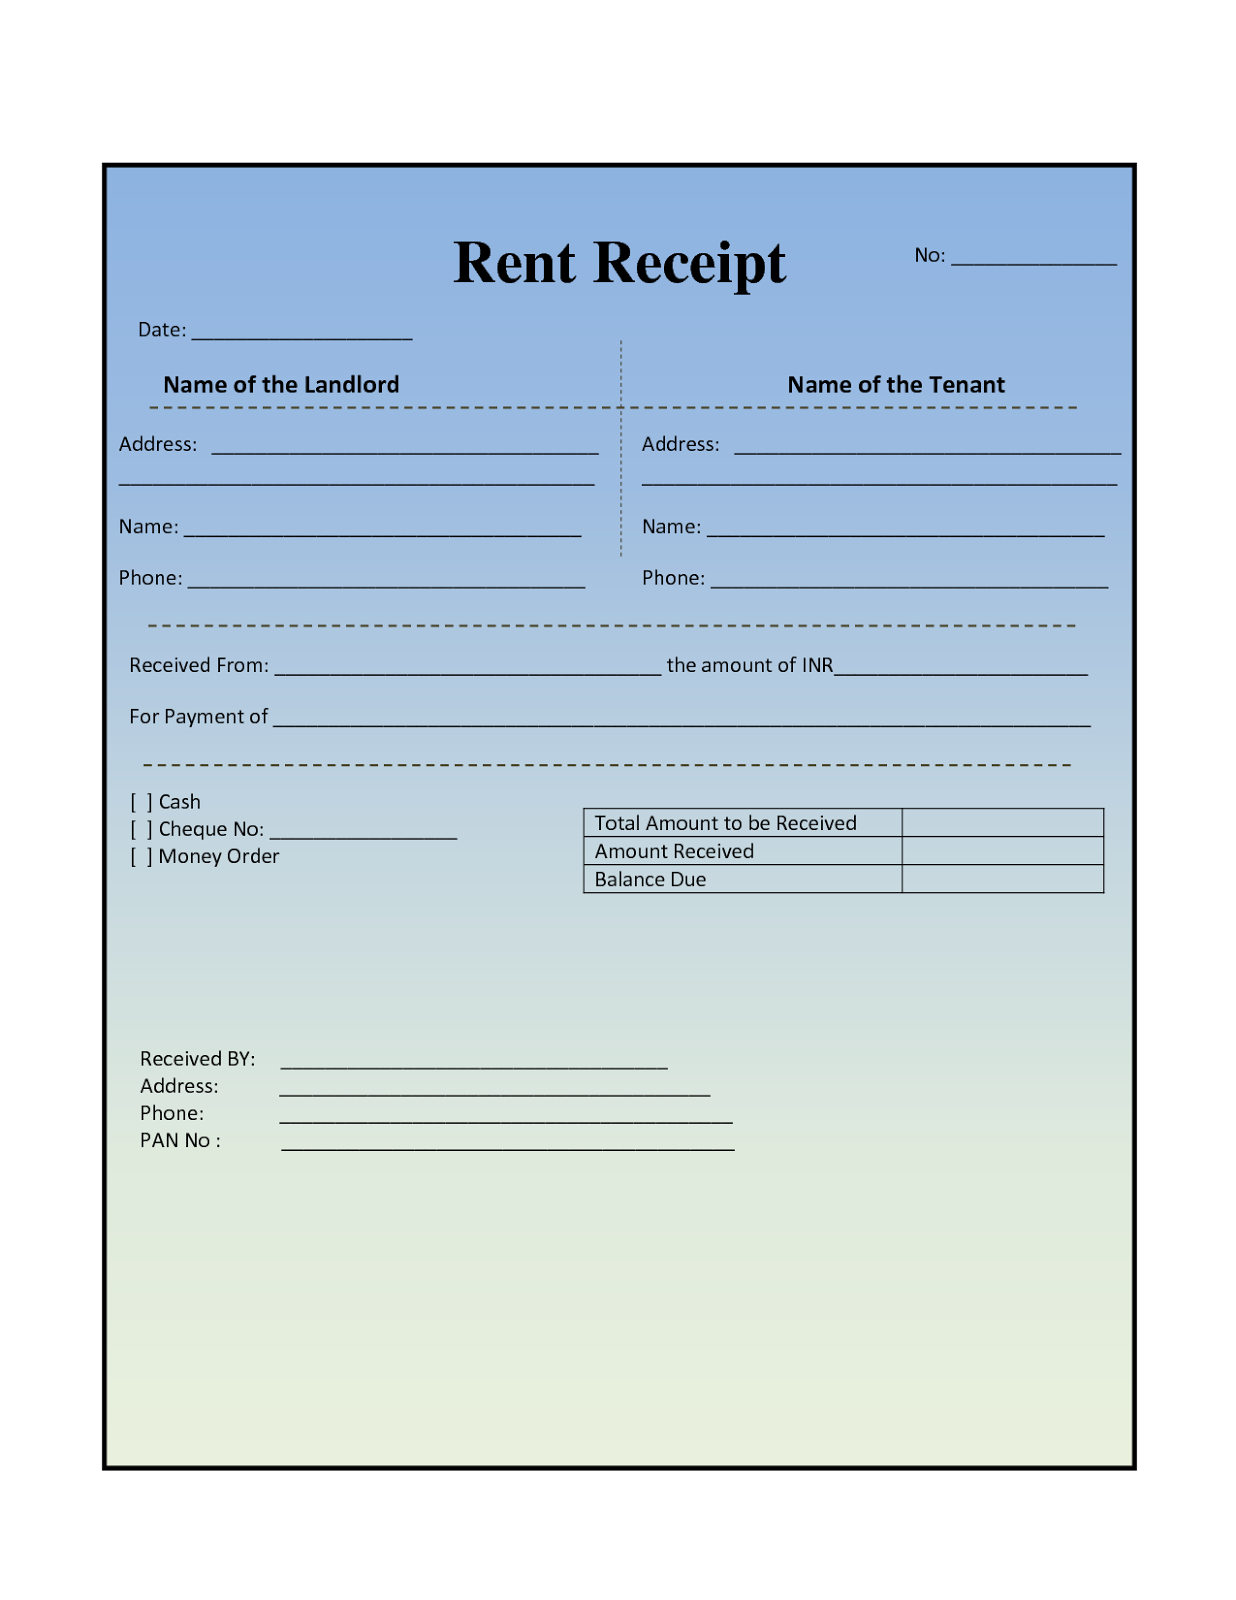 House Rental Invoice Template in Excel Format – Rental Receipt Template Excel